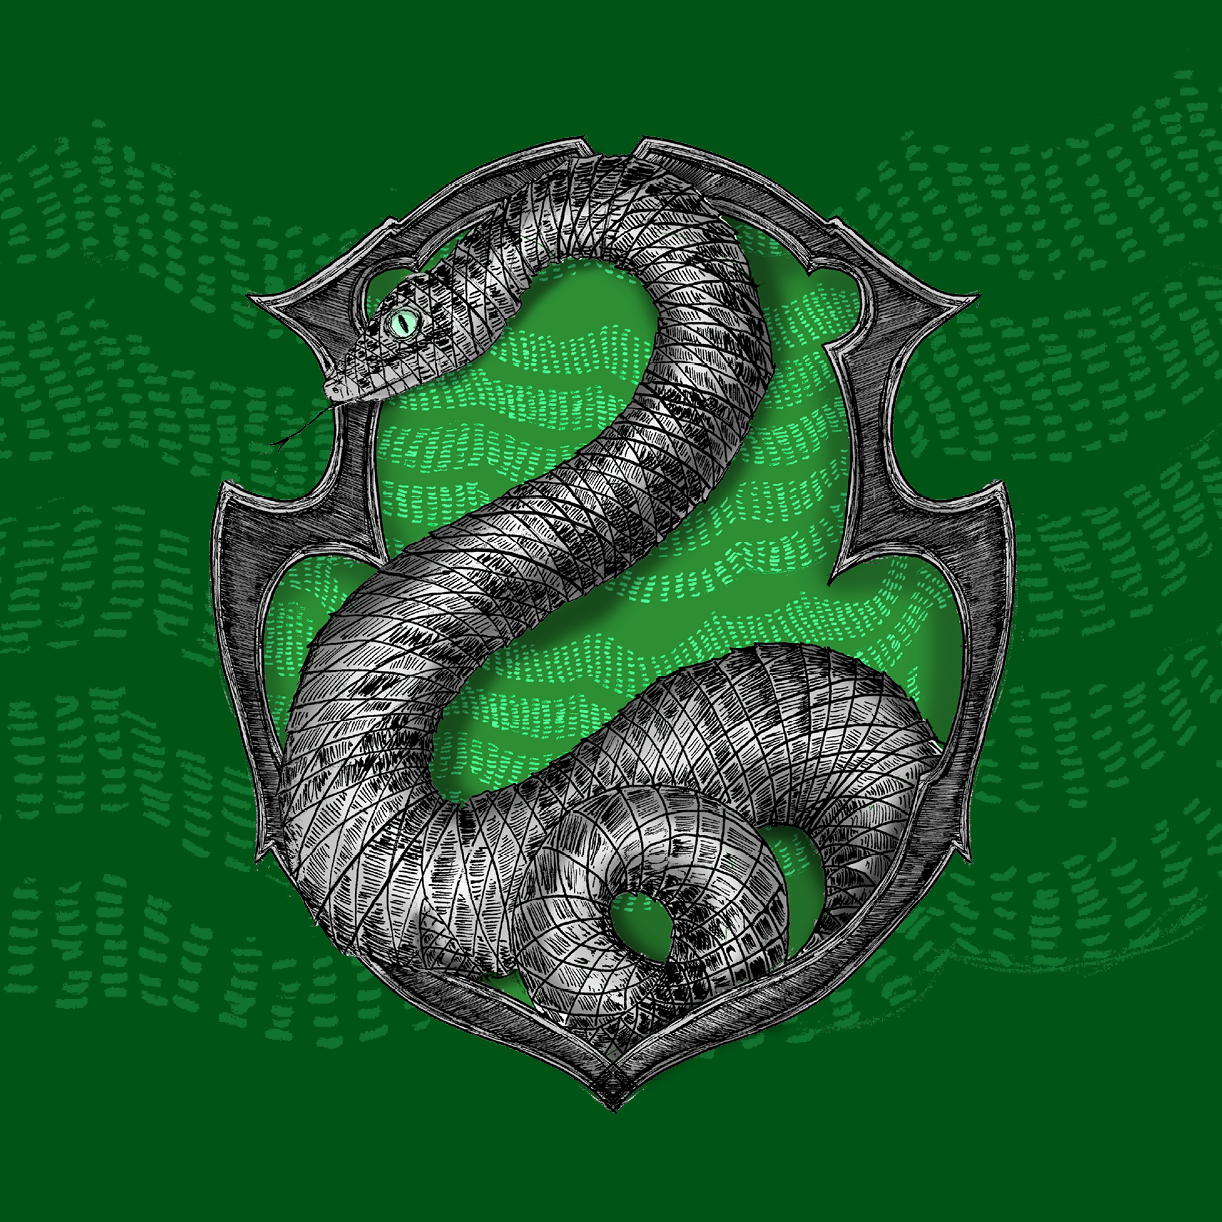 Harry Potter Desktop Wallpaper Slytherin